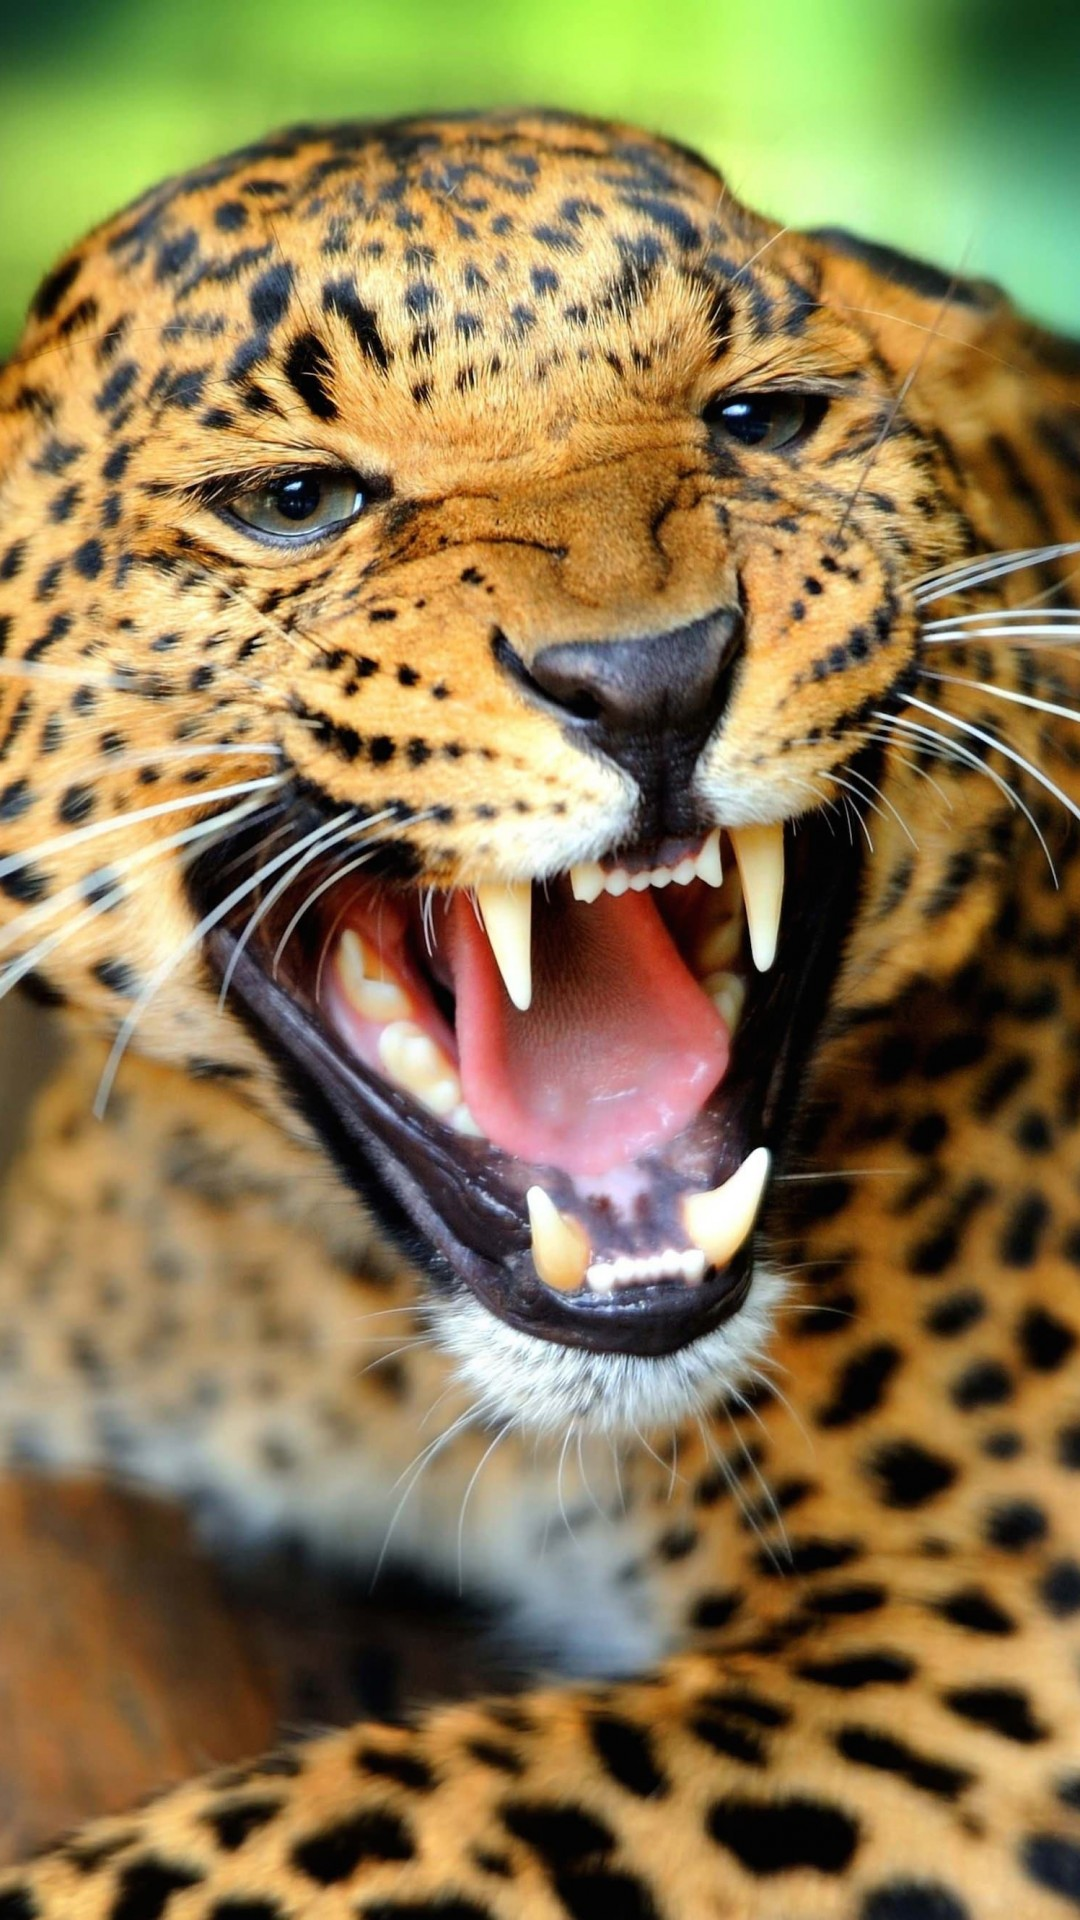 Growling Leopard Wallpaper for Google Nexus 5X